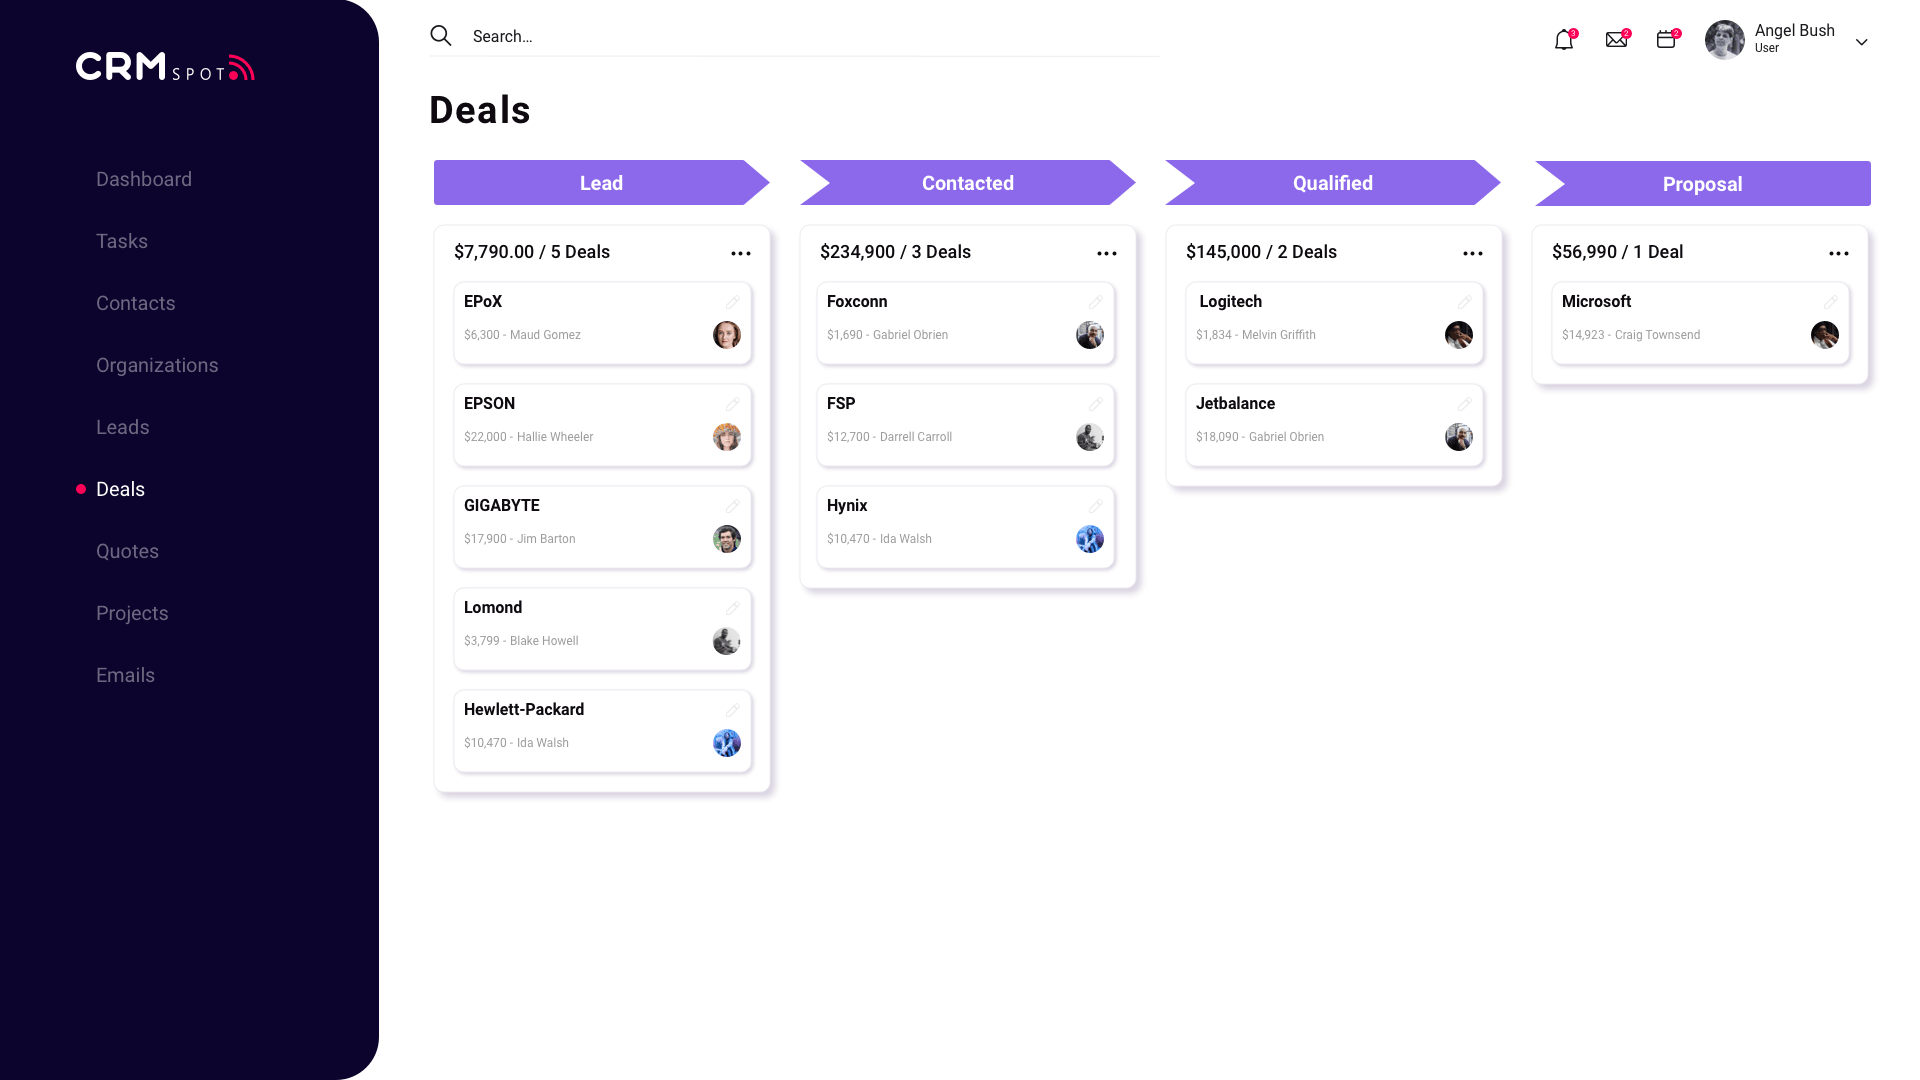 Leads feature